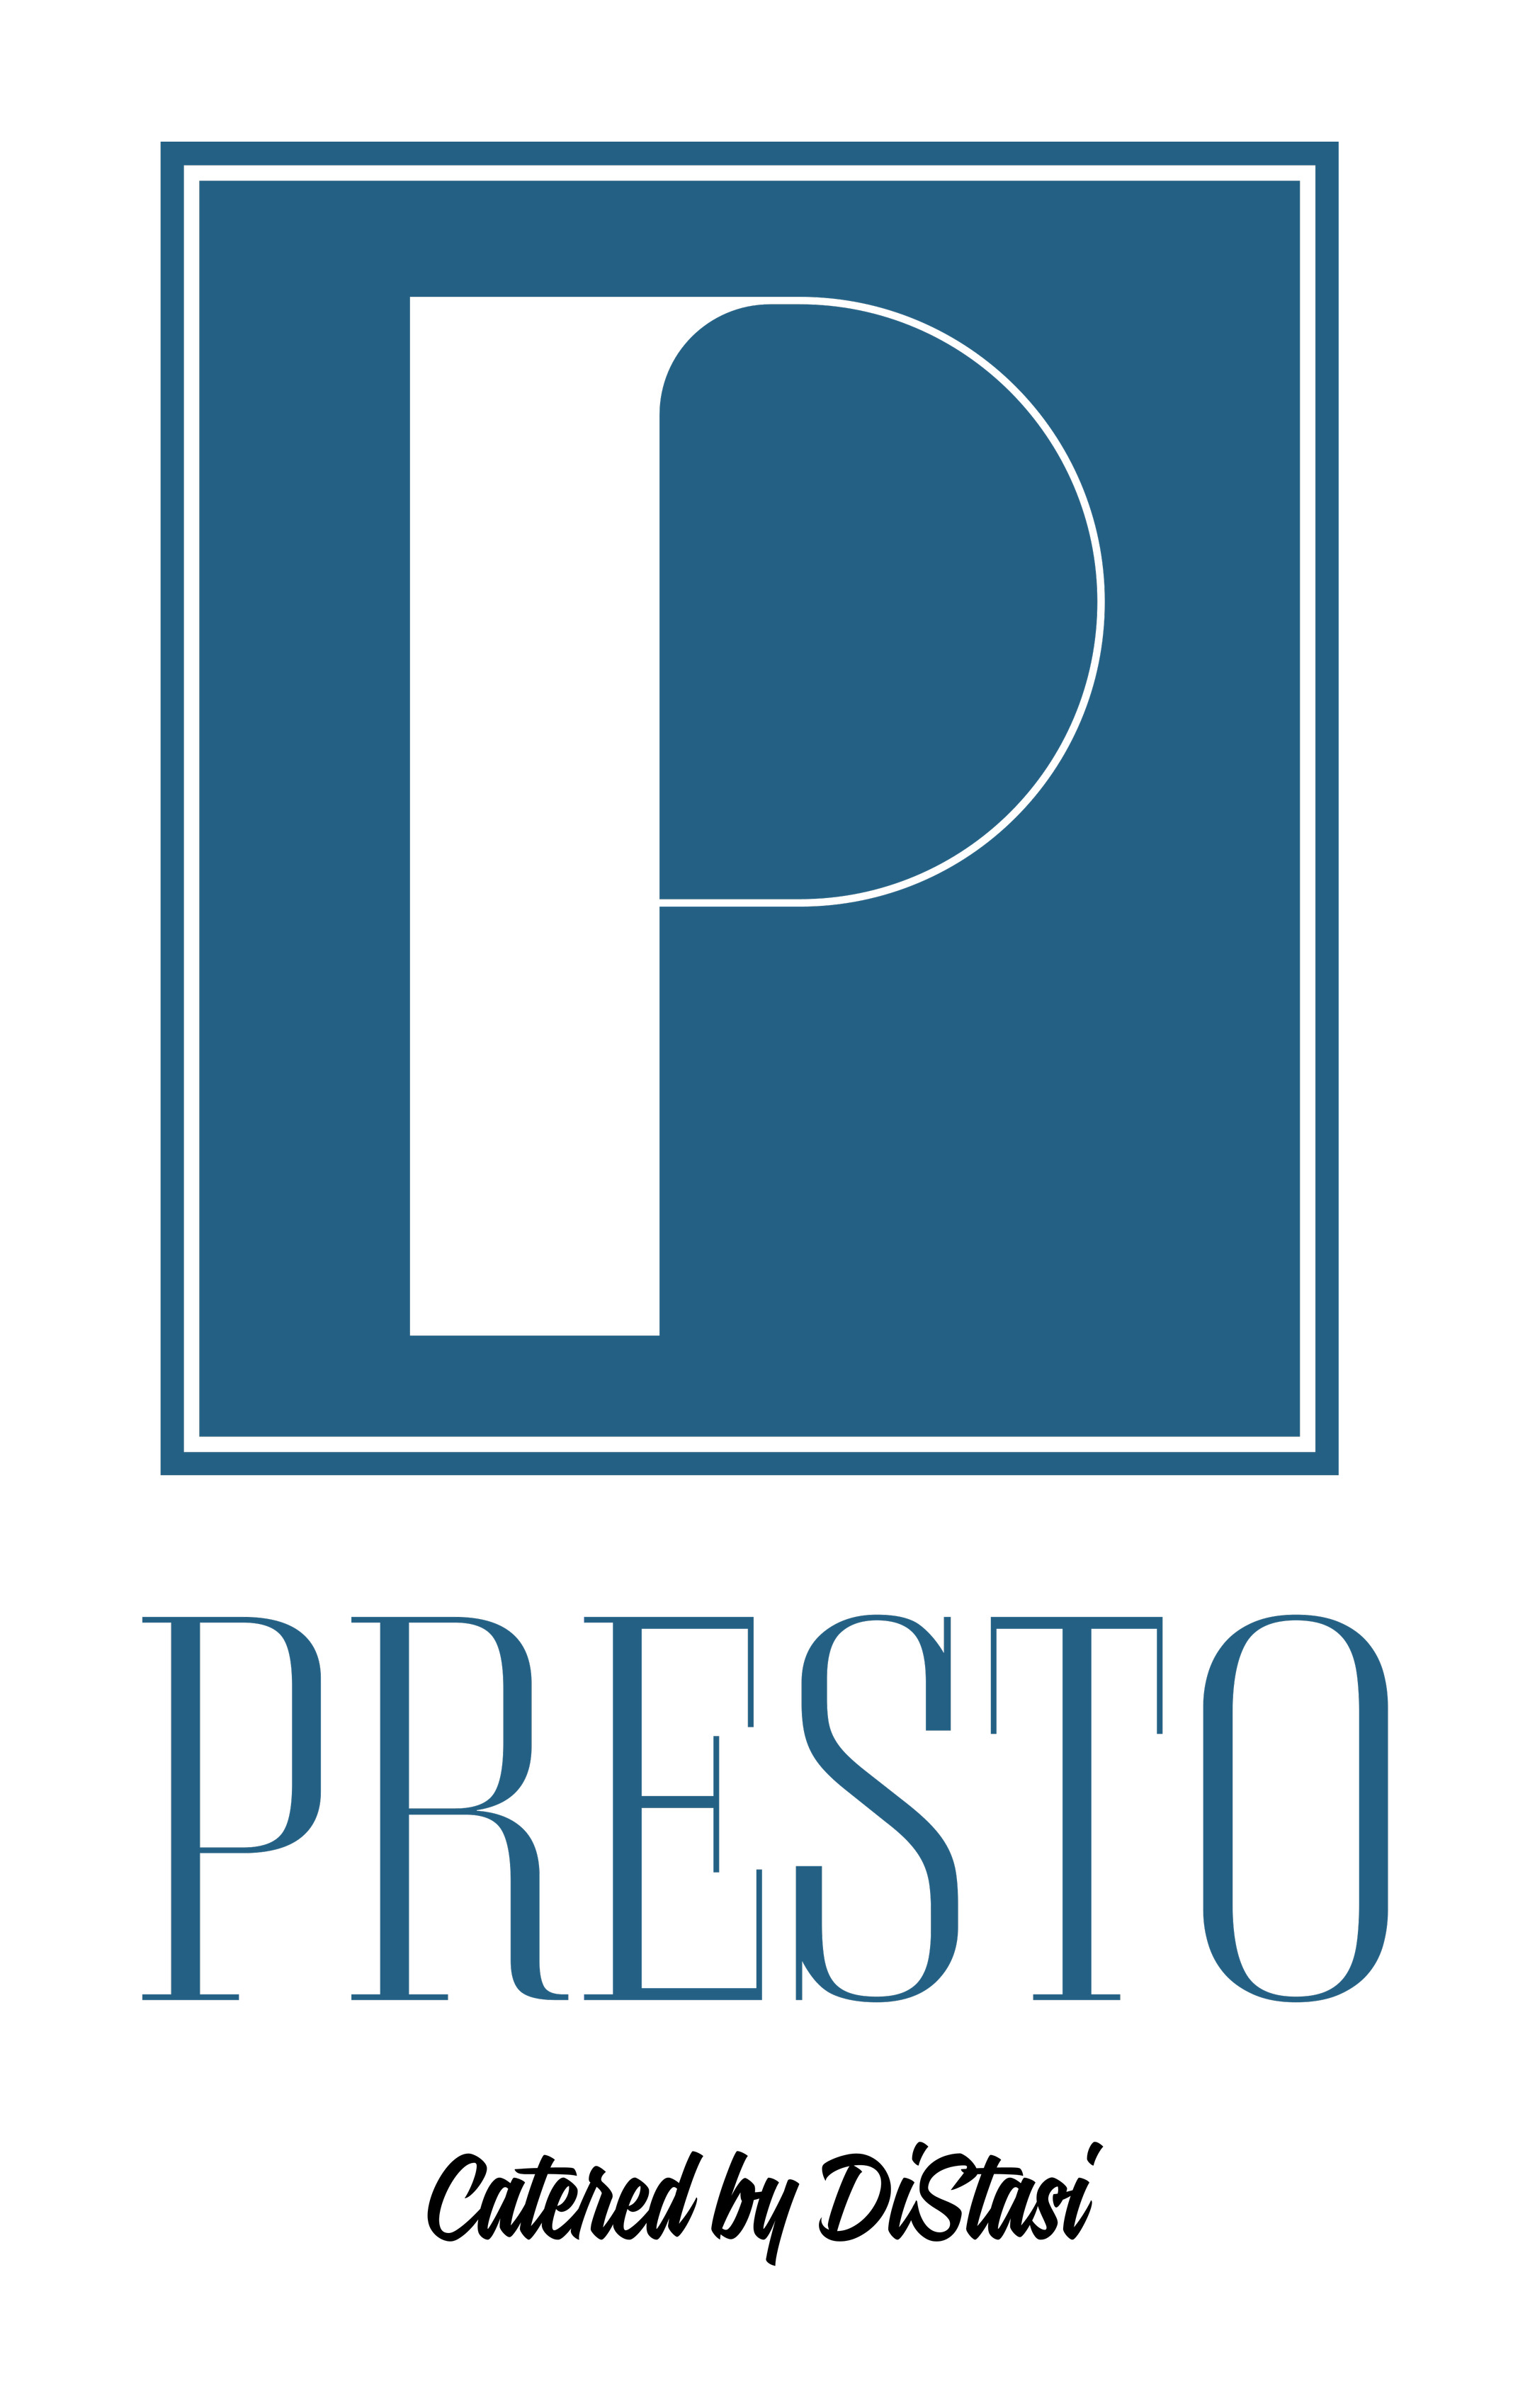 Presto! Express Catering by DiStasi